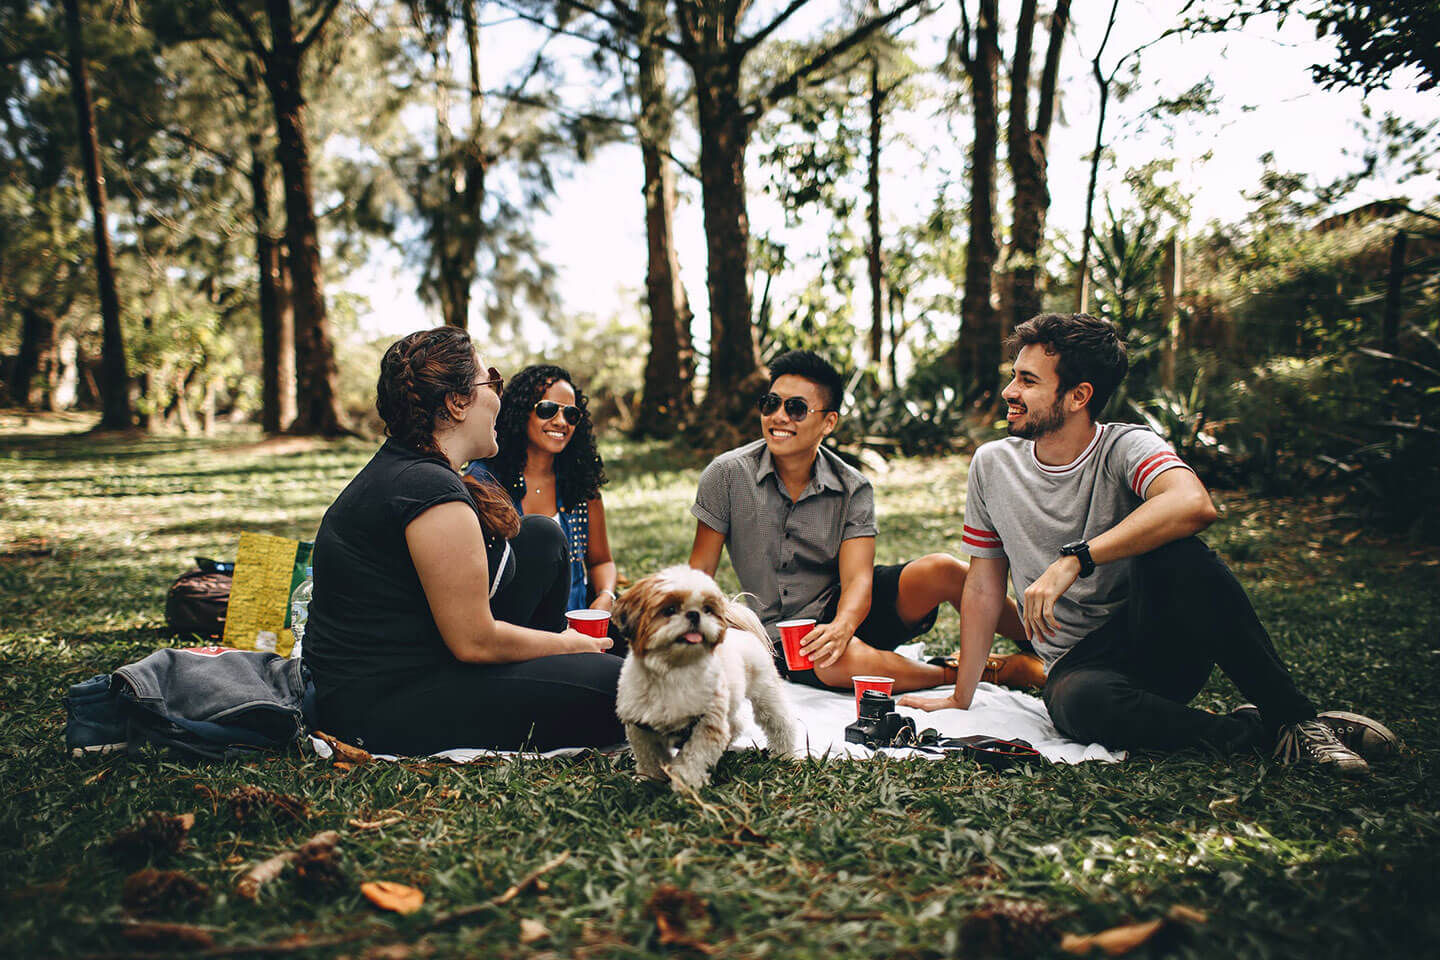 Group of people with dog having a picnic outside